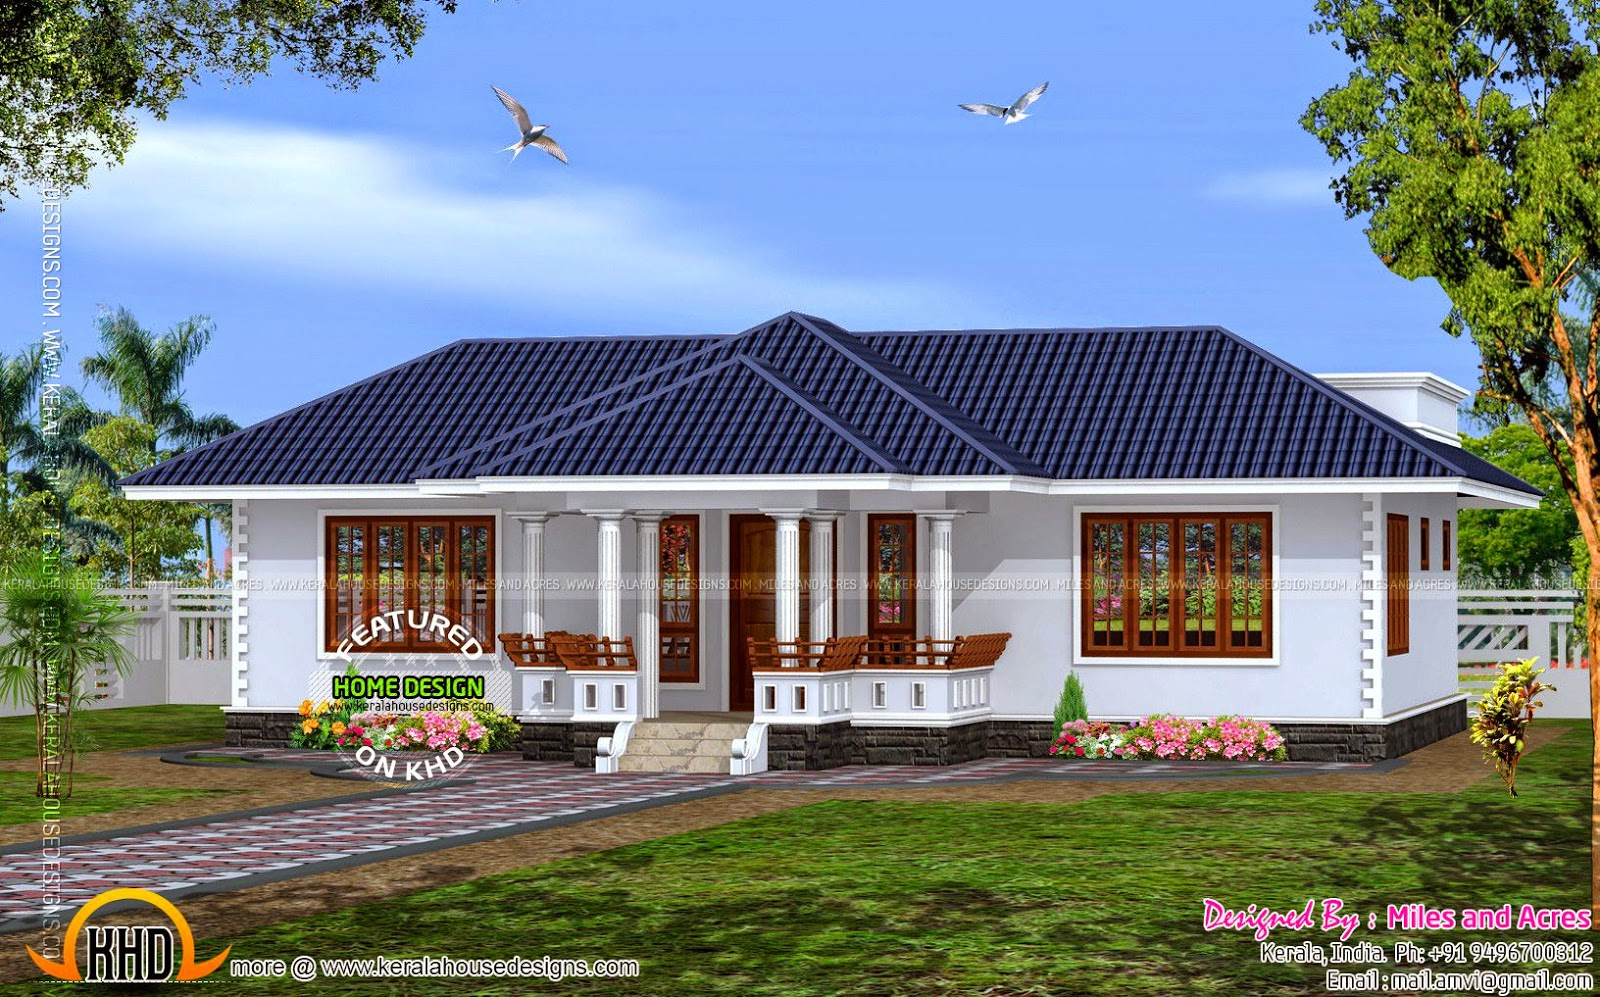 Siddu buzz online house plan of single floor house kerala home design House plans and designs